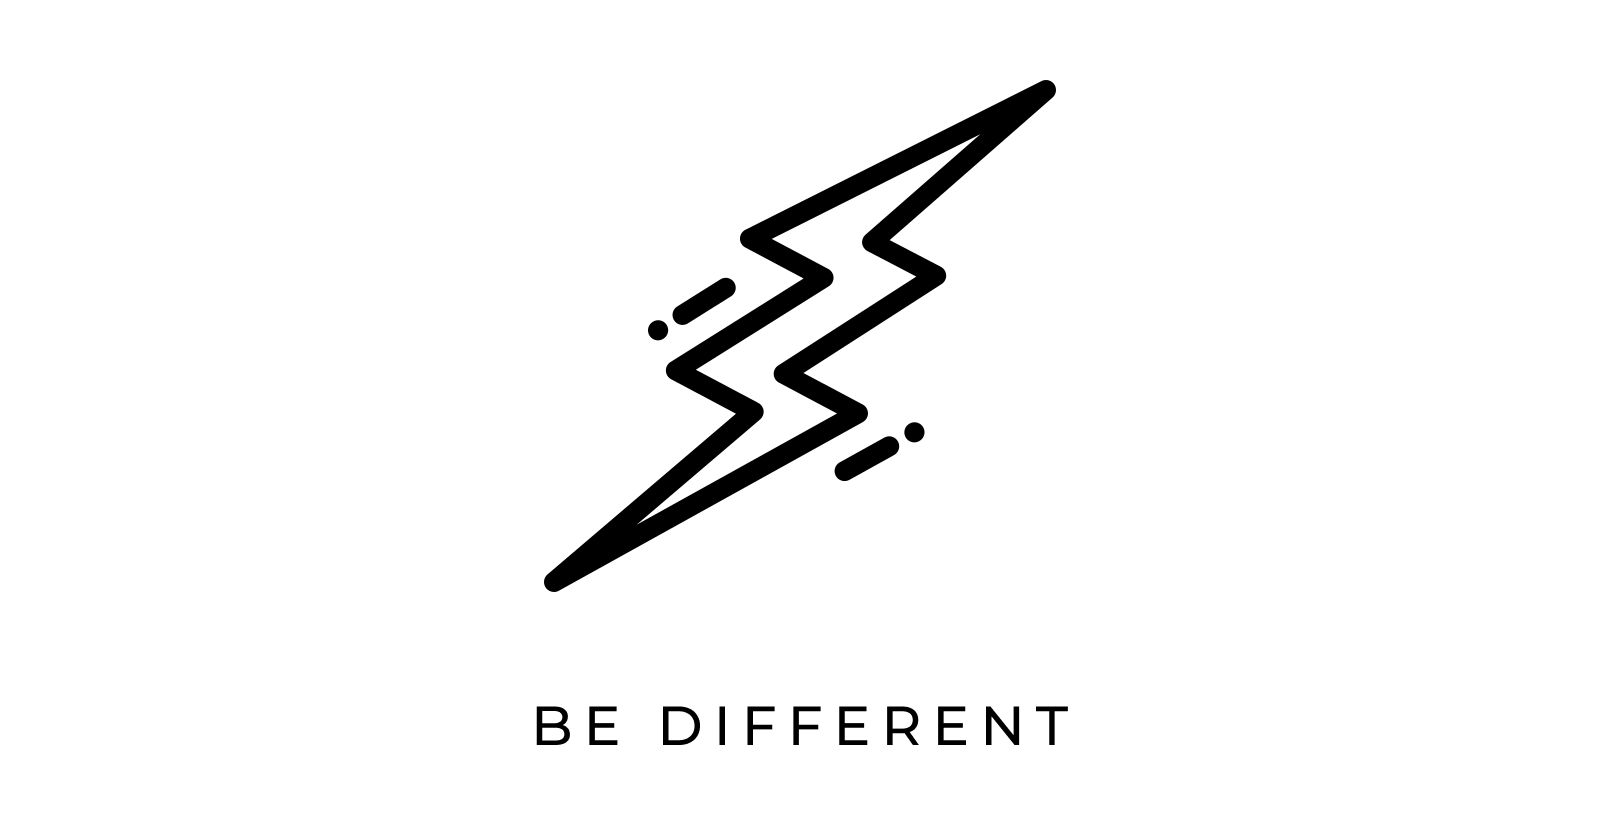 lightning bolt icon that says be different